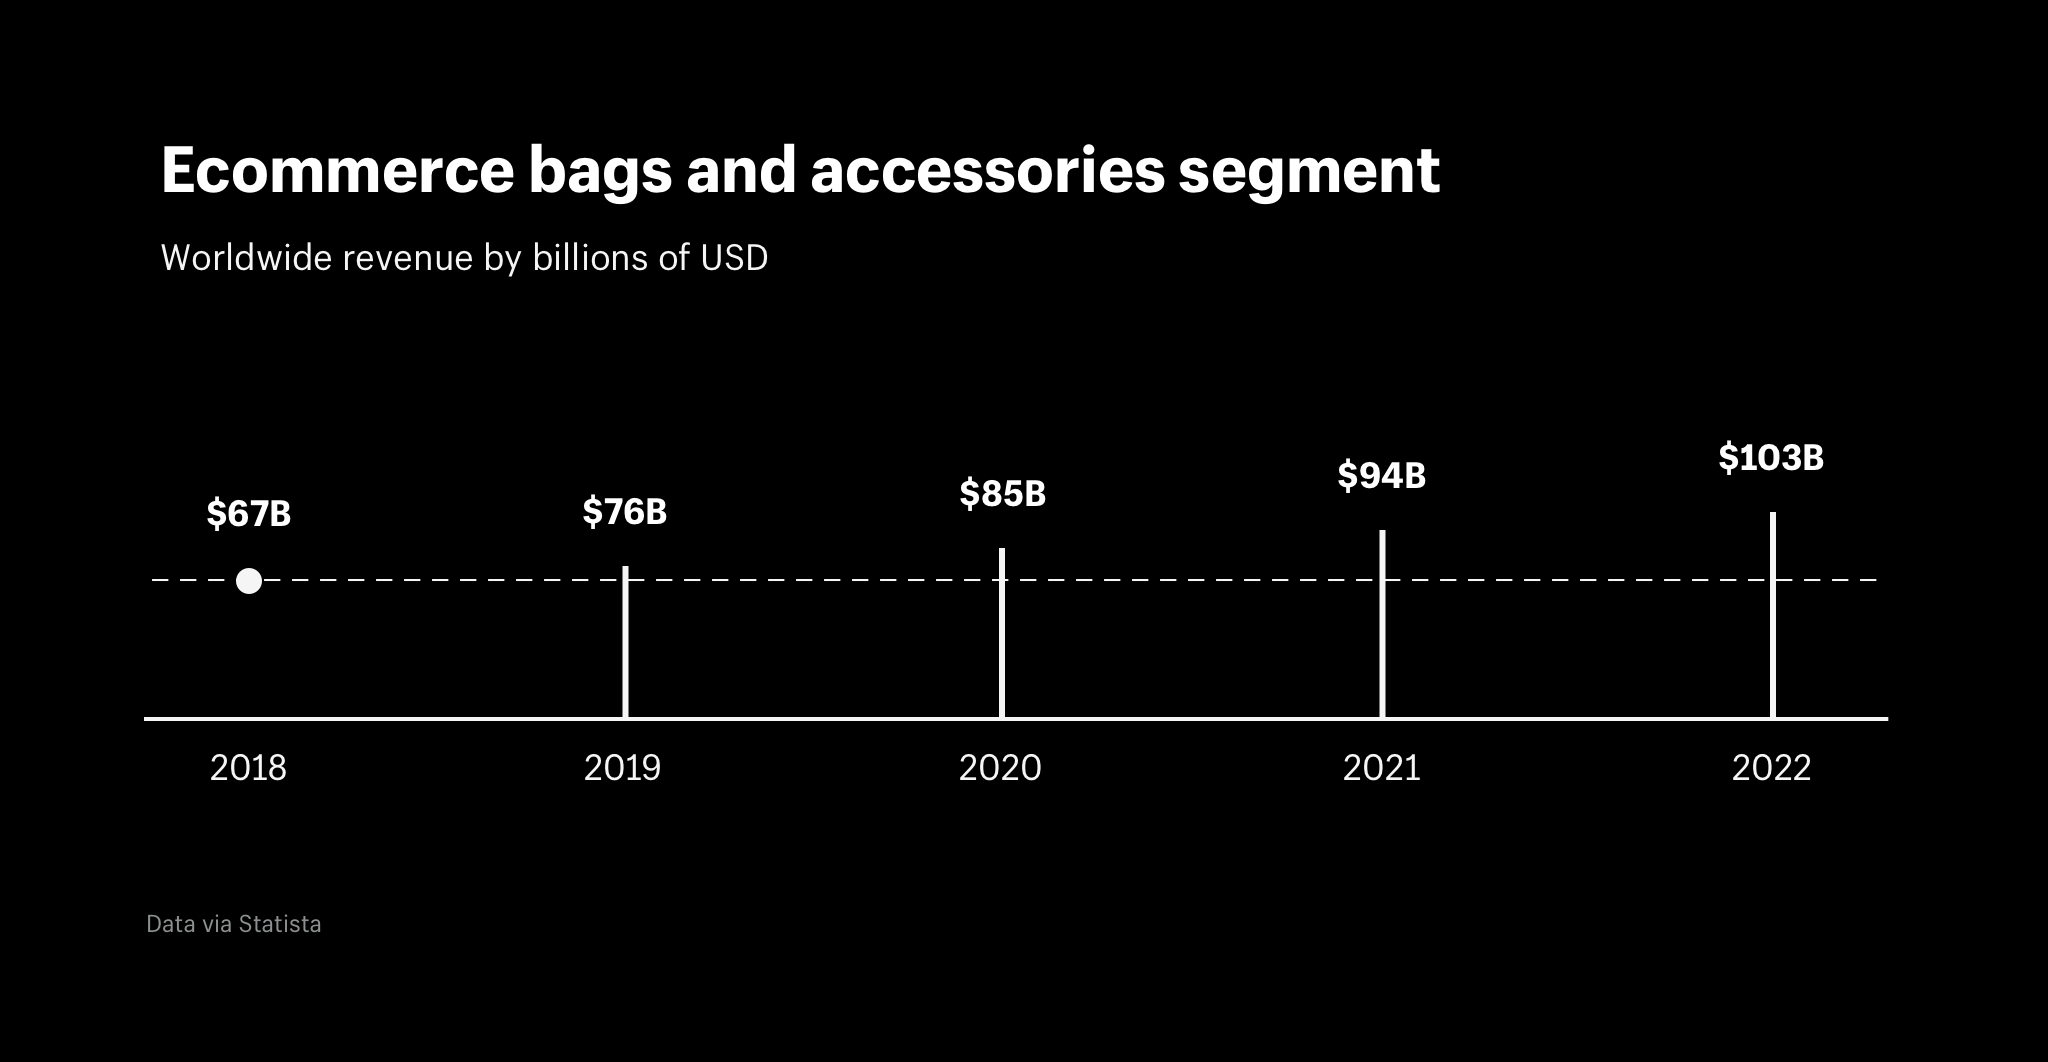 Ecommerce bags and accessories segment worldwide revenue